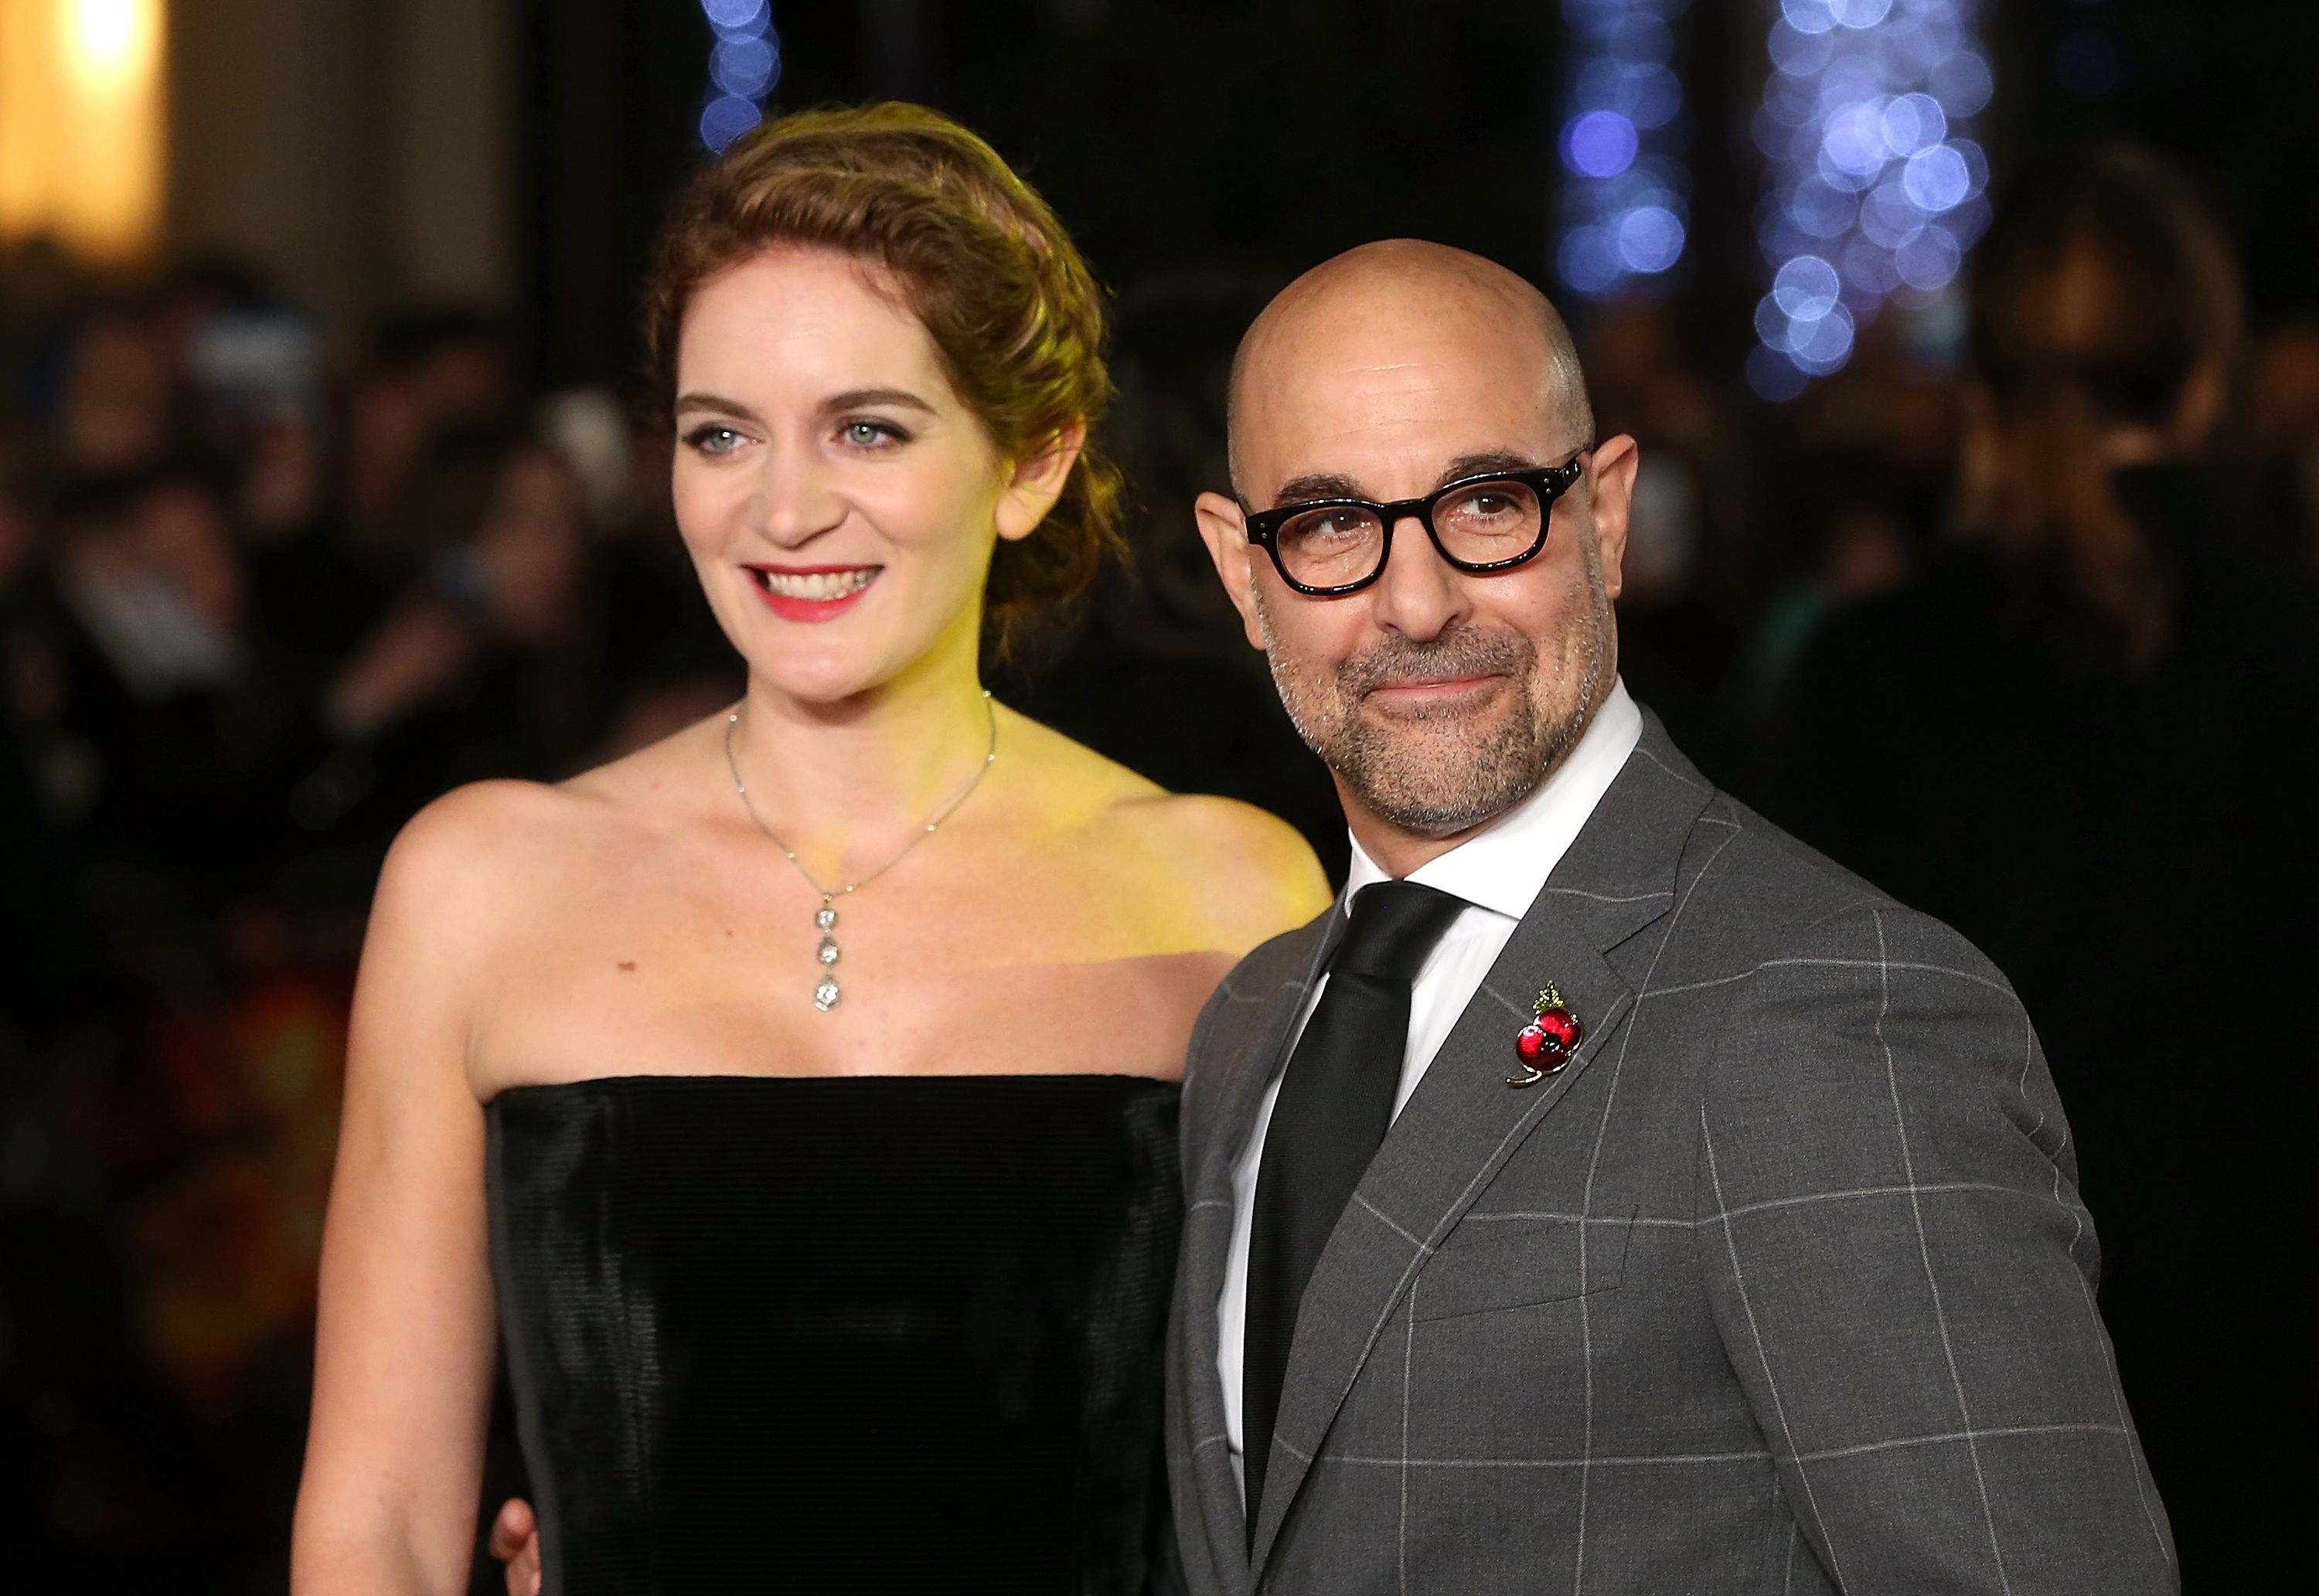 Stanley Tucci's Wife Is Emily Blunt's Sister—All About Felicity Blunt